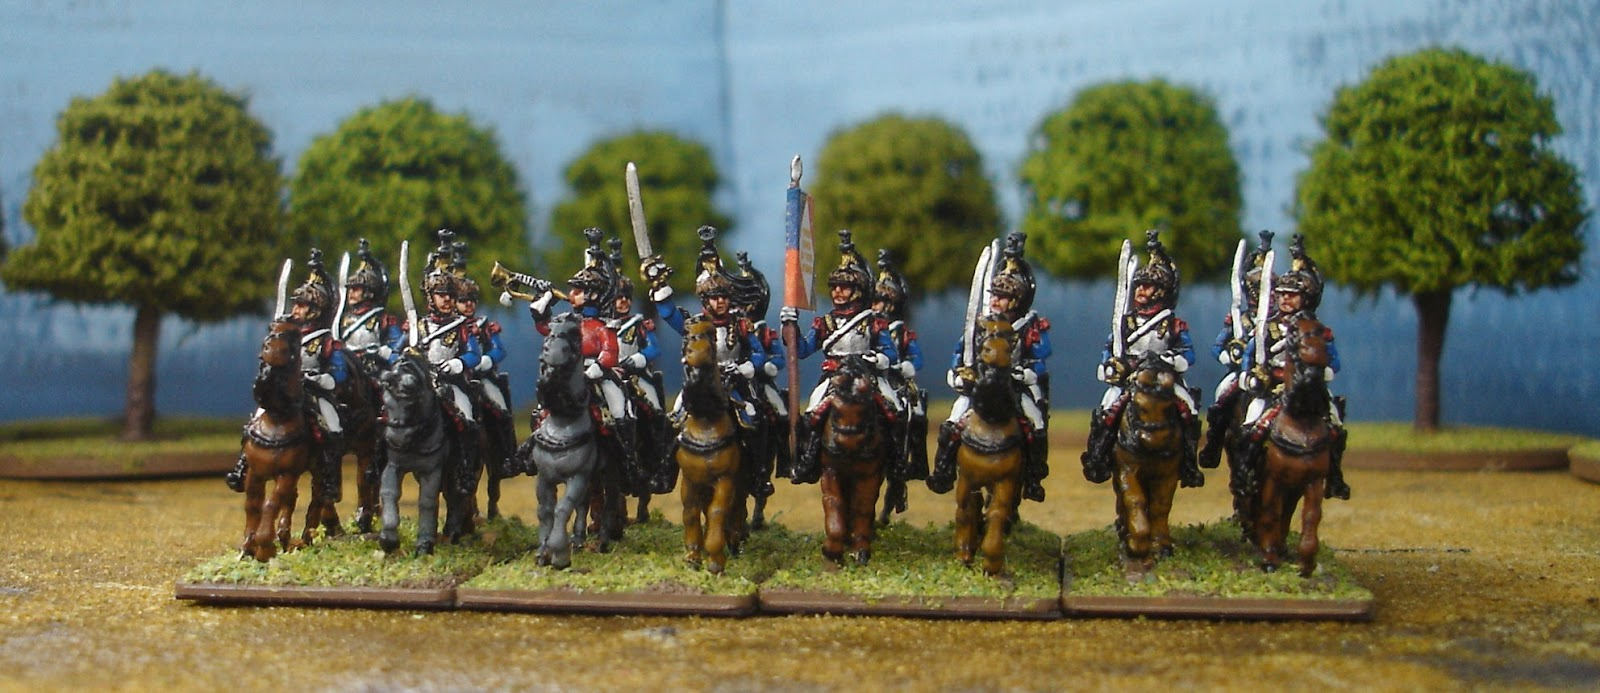 One Sided Miniature Wargaming Discourse: French Napoleonic